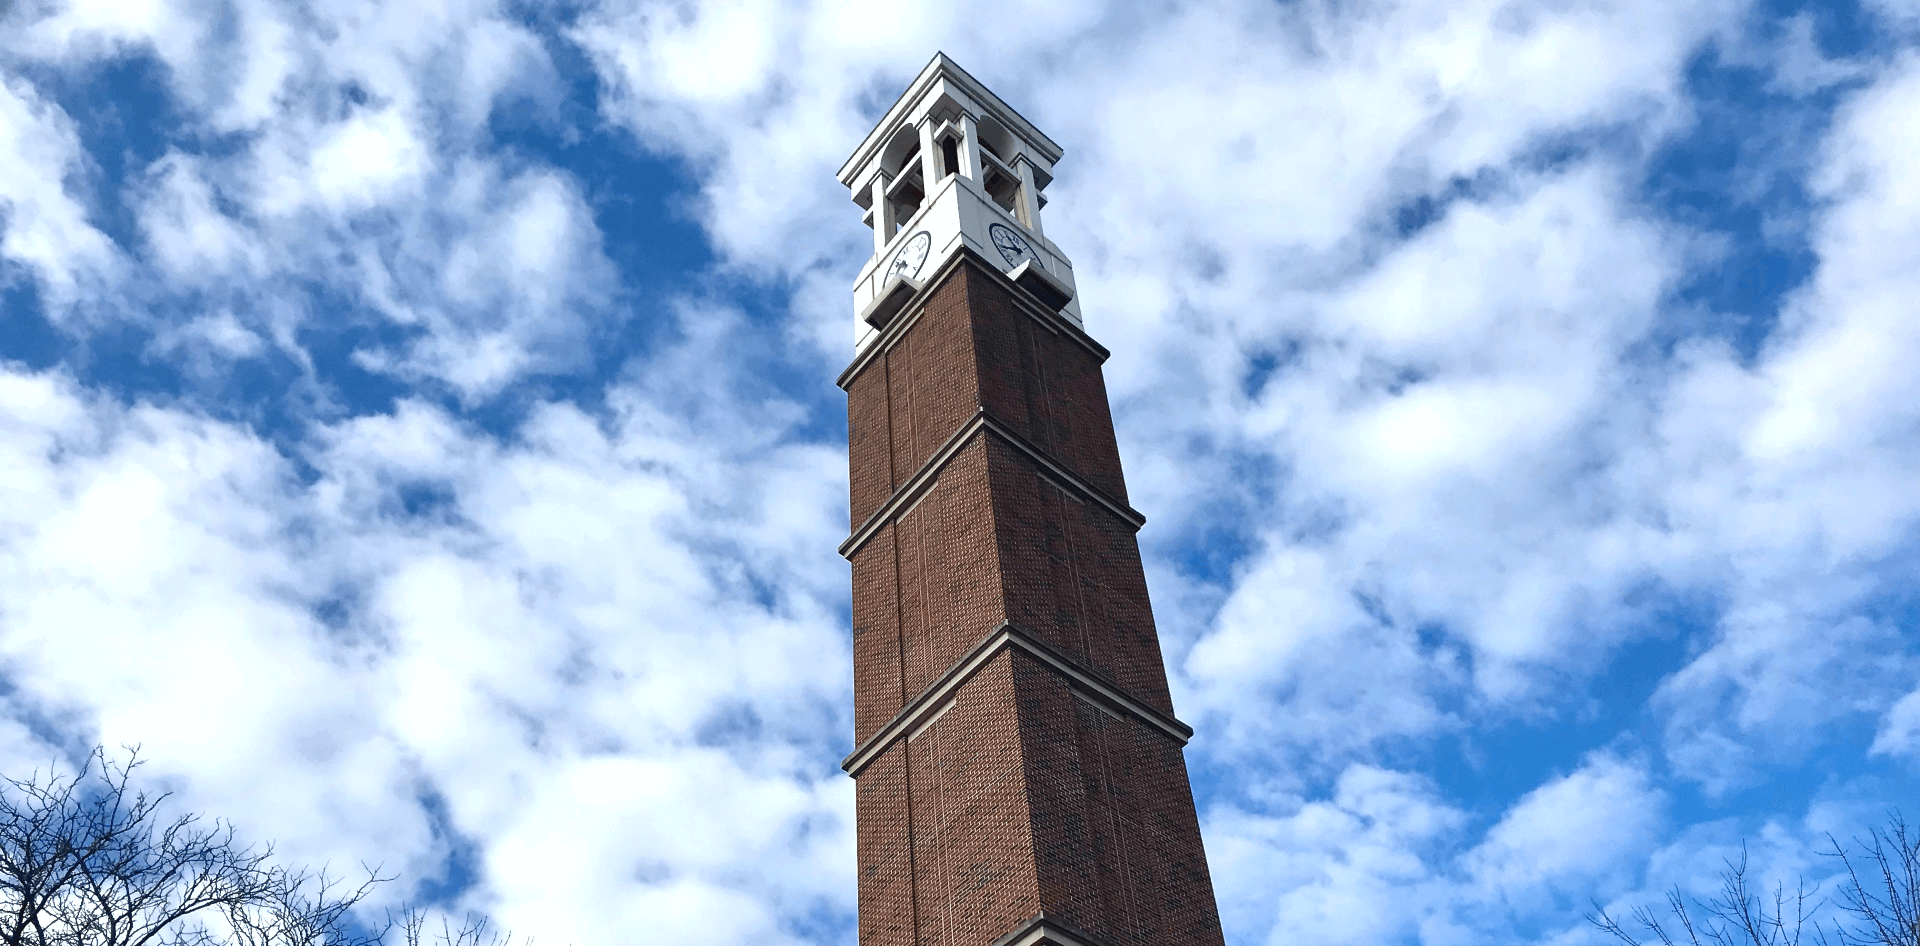 Purdue Bell Tower against a cloudy sky